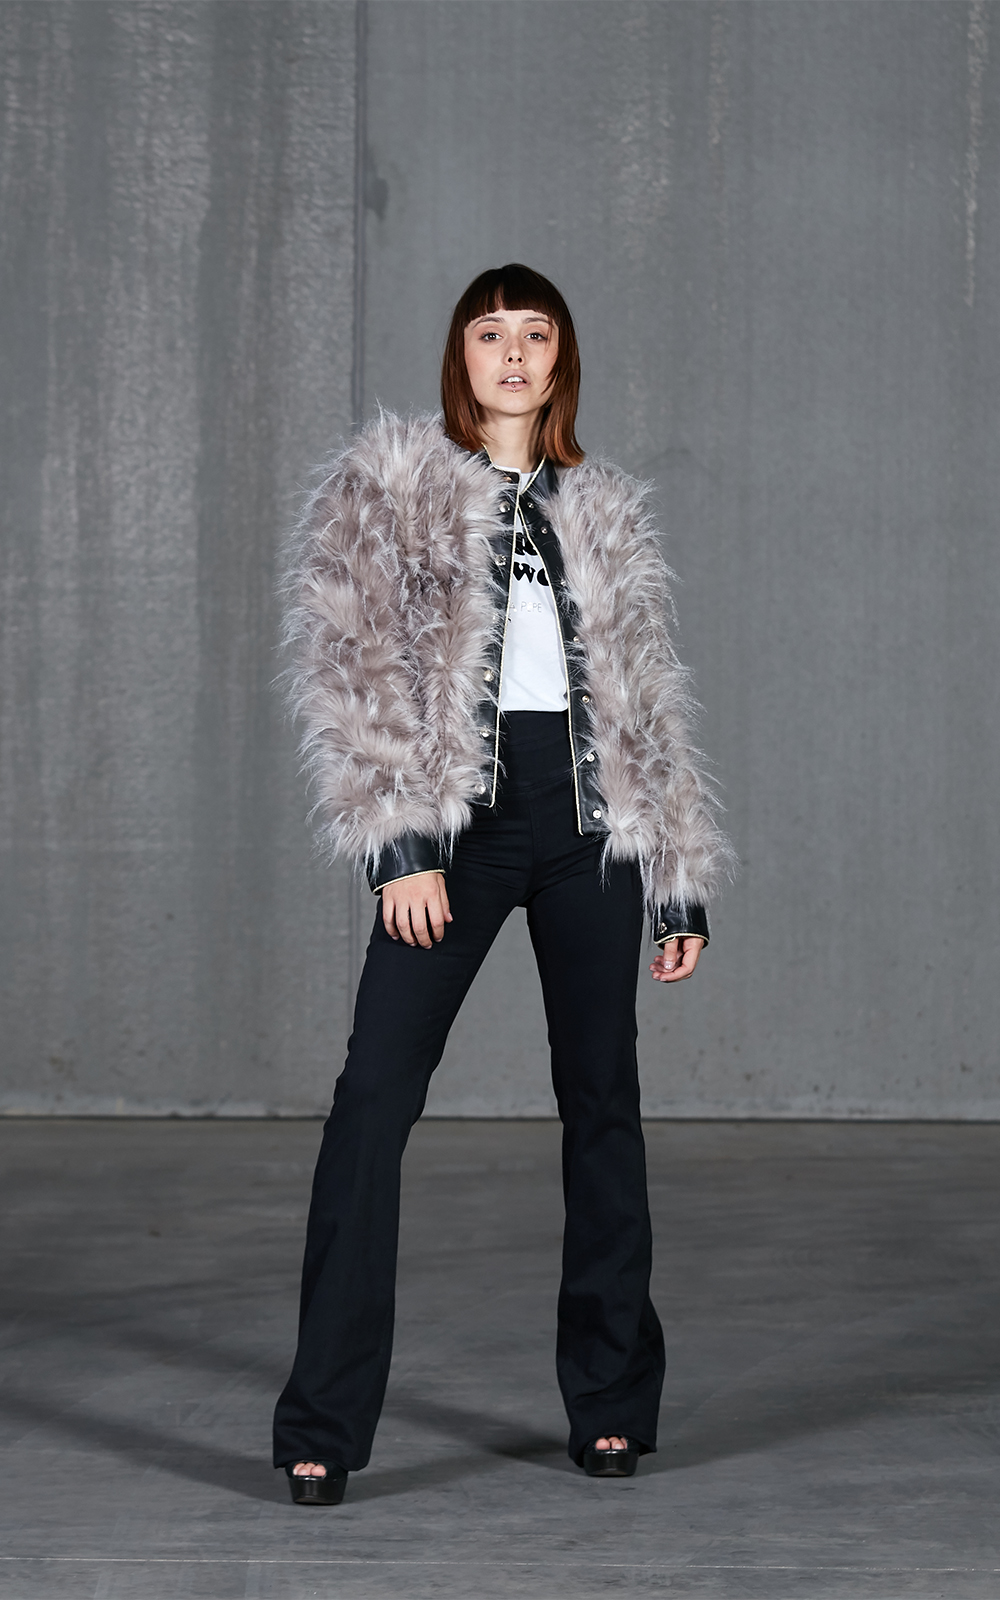 GROOVE Galleria Commerciale FW 18/19